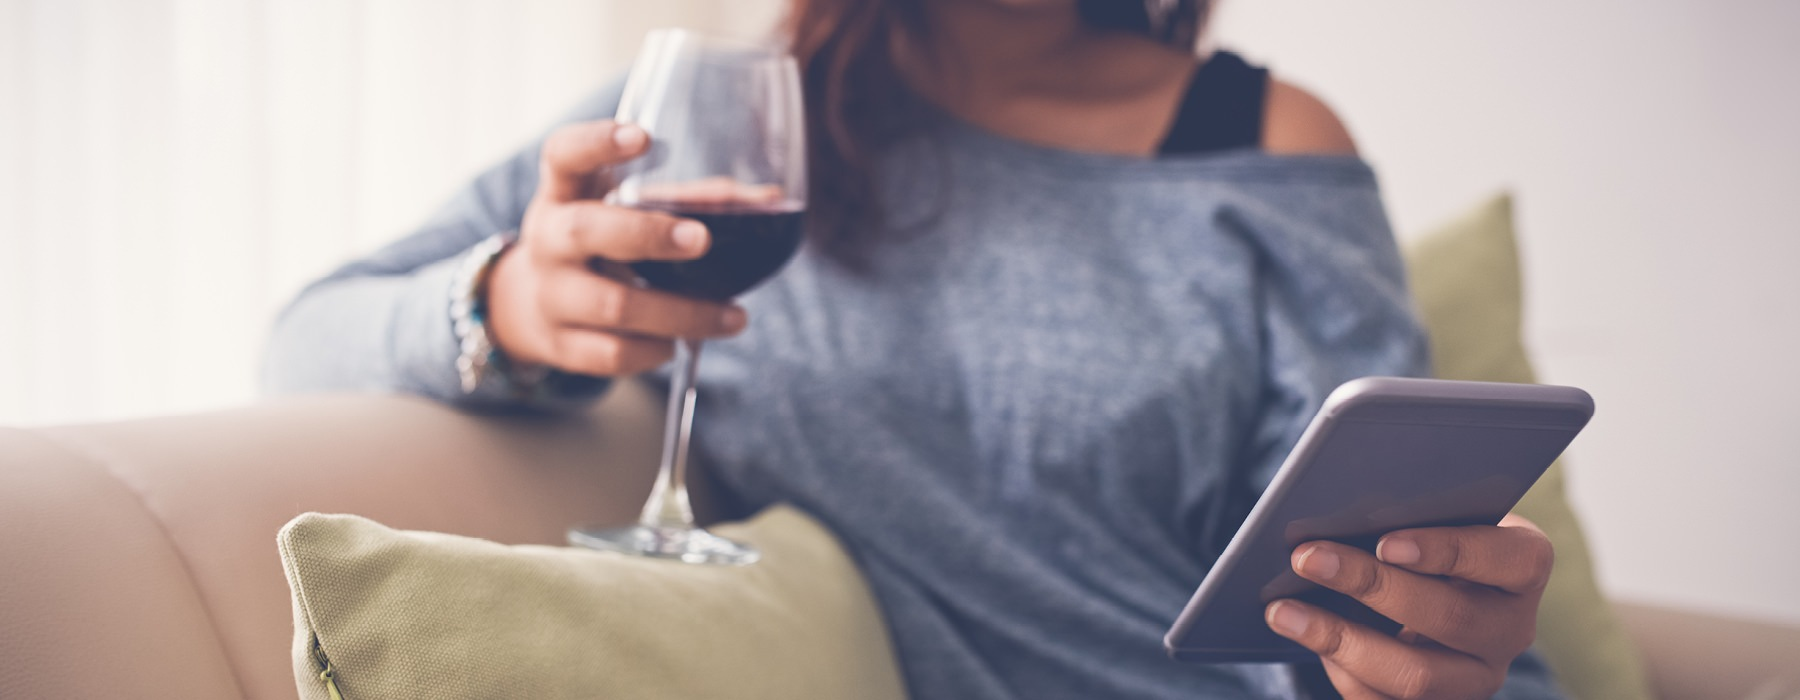 Woman drinking wine and on phone